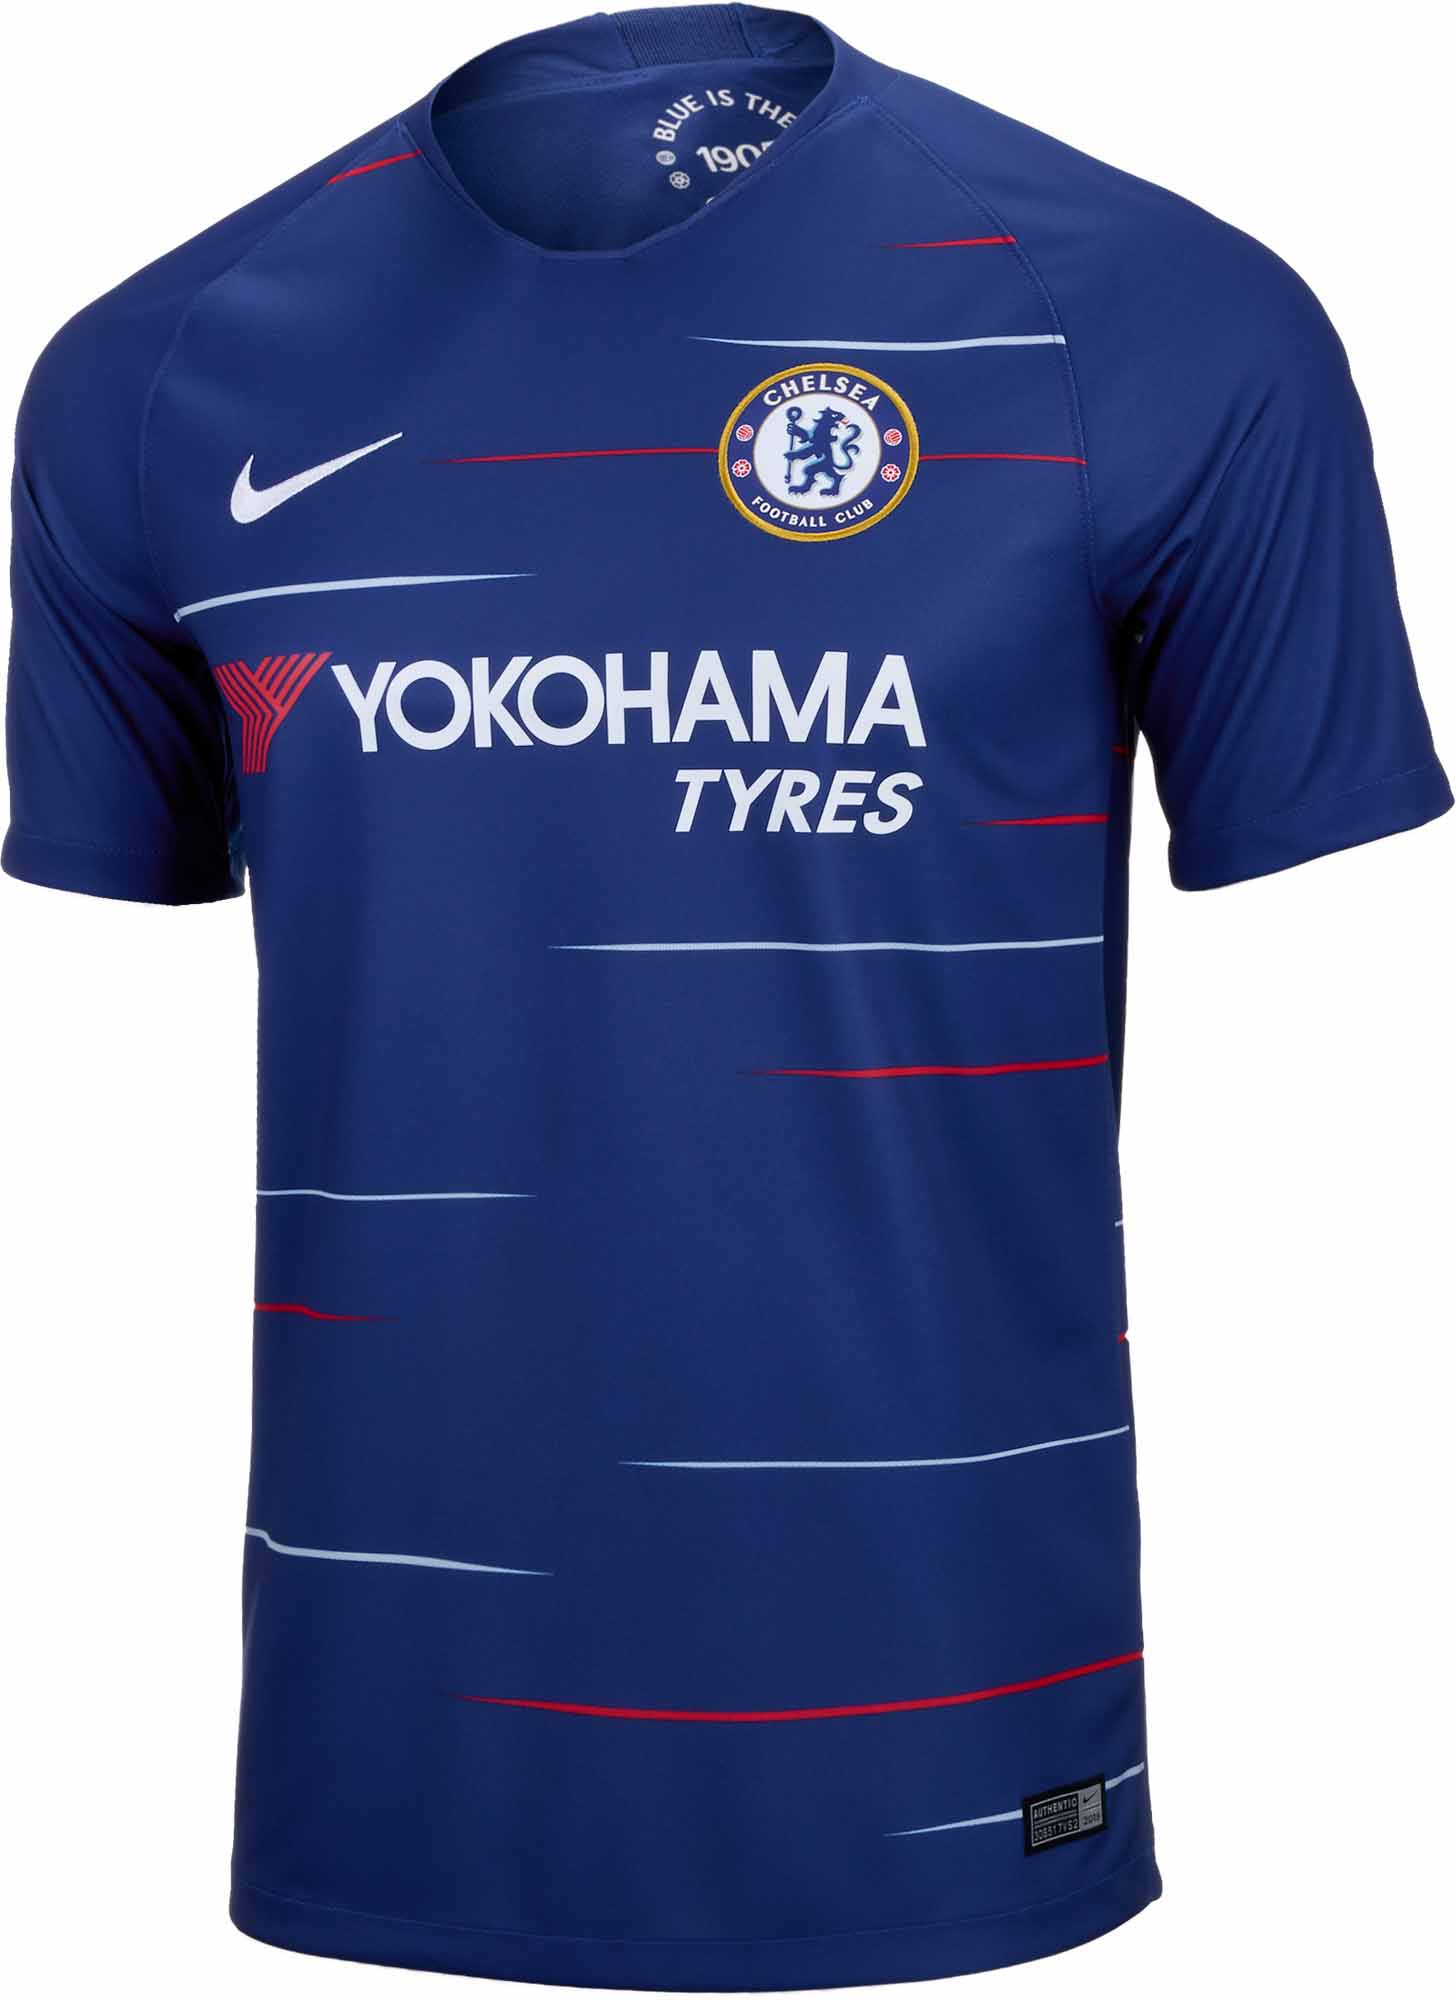 more photos 908c2 f11e2 2018/19 Nike Chelsea Home Jersey - SoccerPro